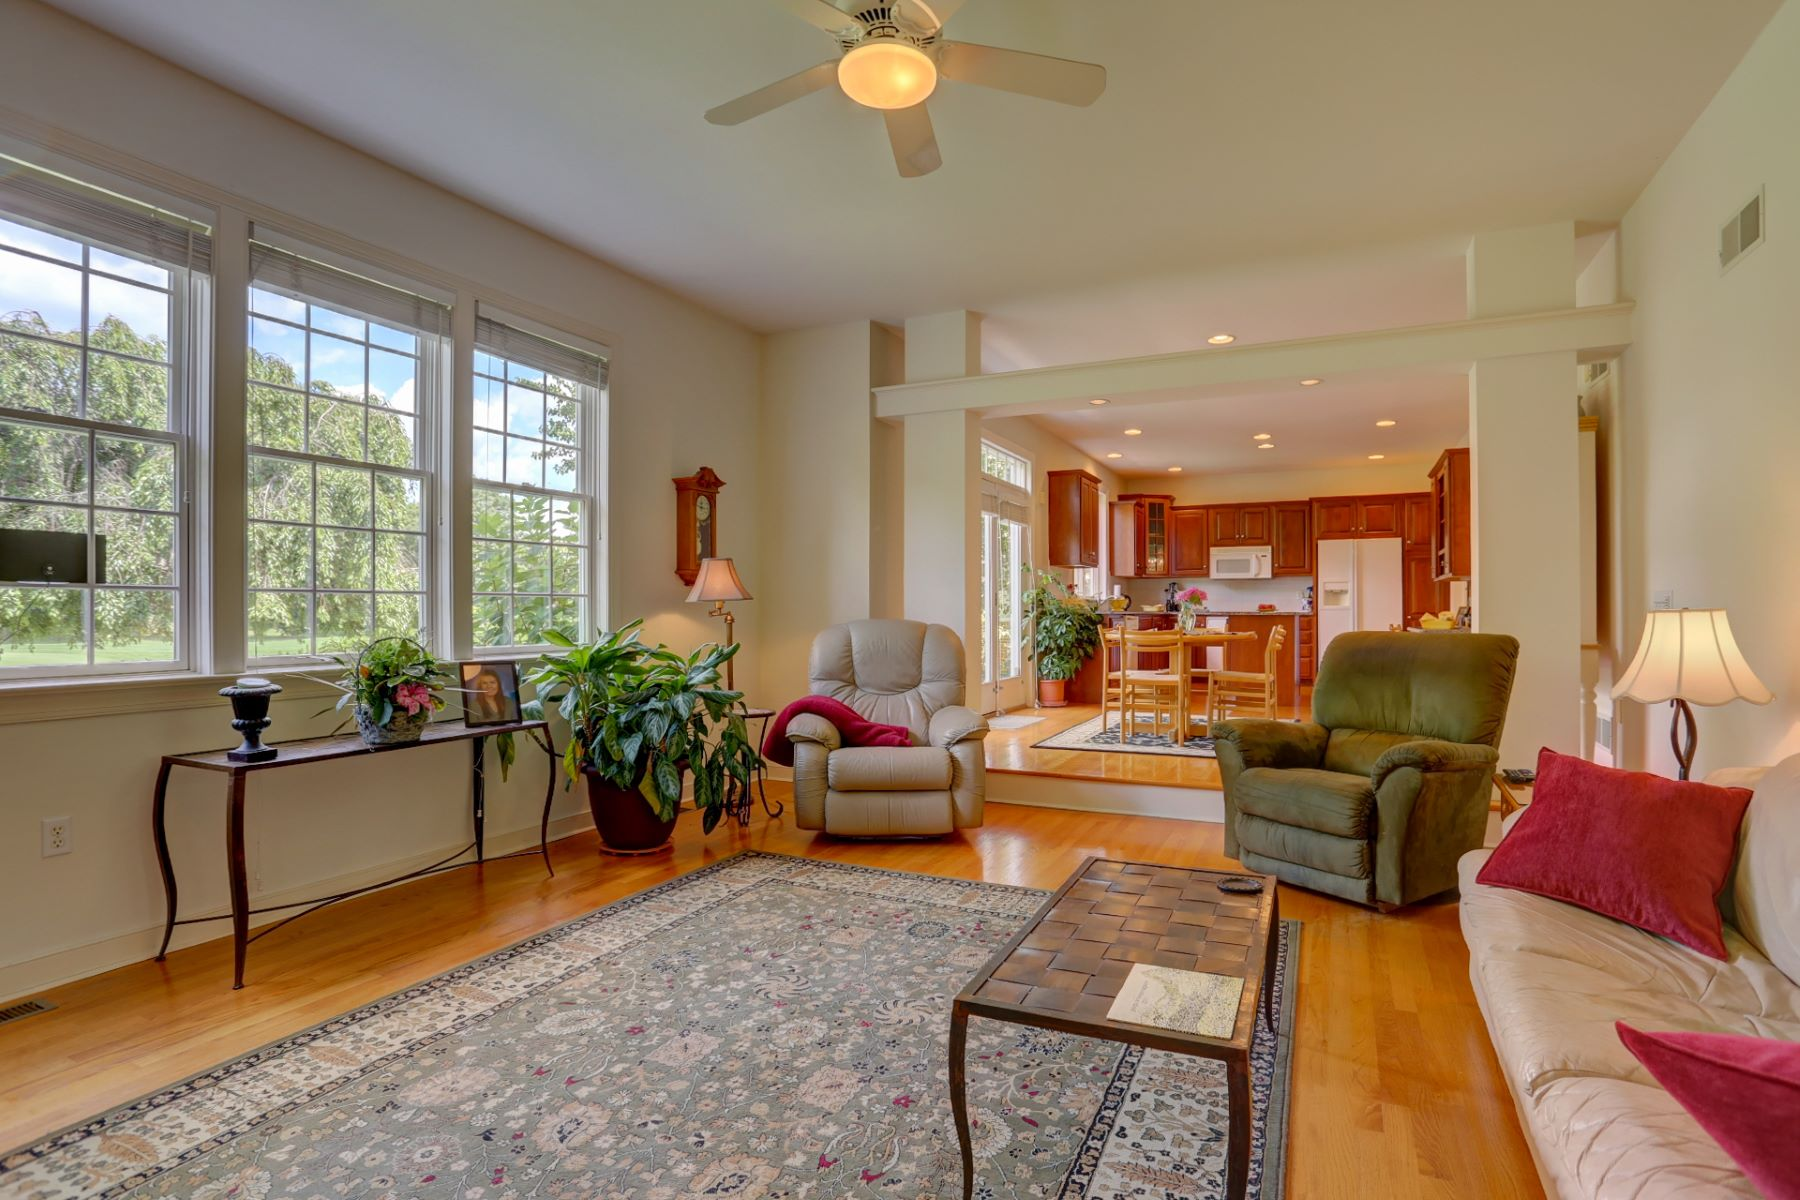 Additional photo for property listing at 821 Woodfield Drive  Lititz, Pennsylvania 17543 United States